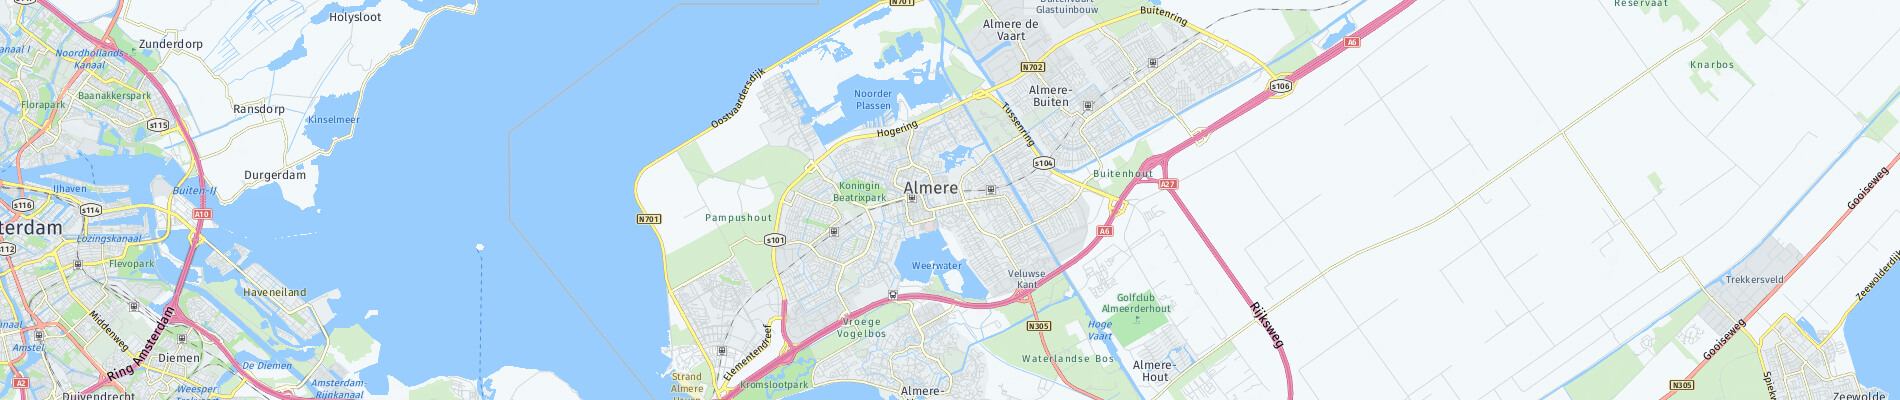 assets/images/cities/almere.jpg